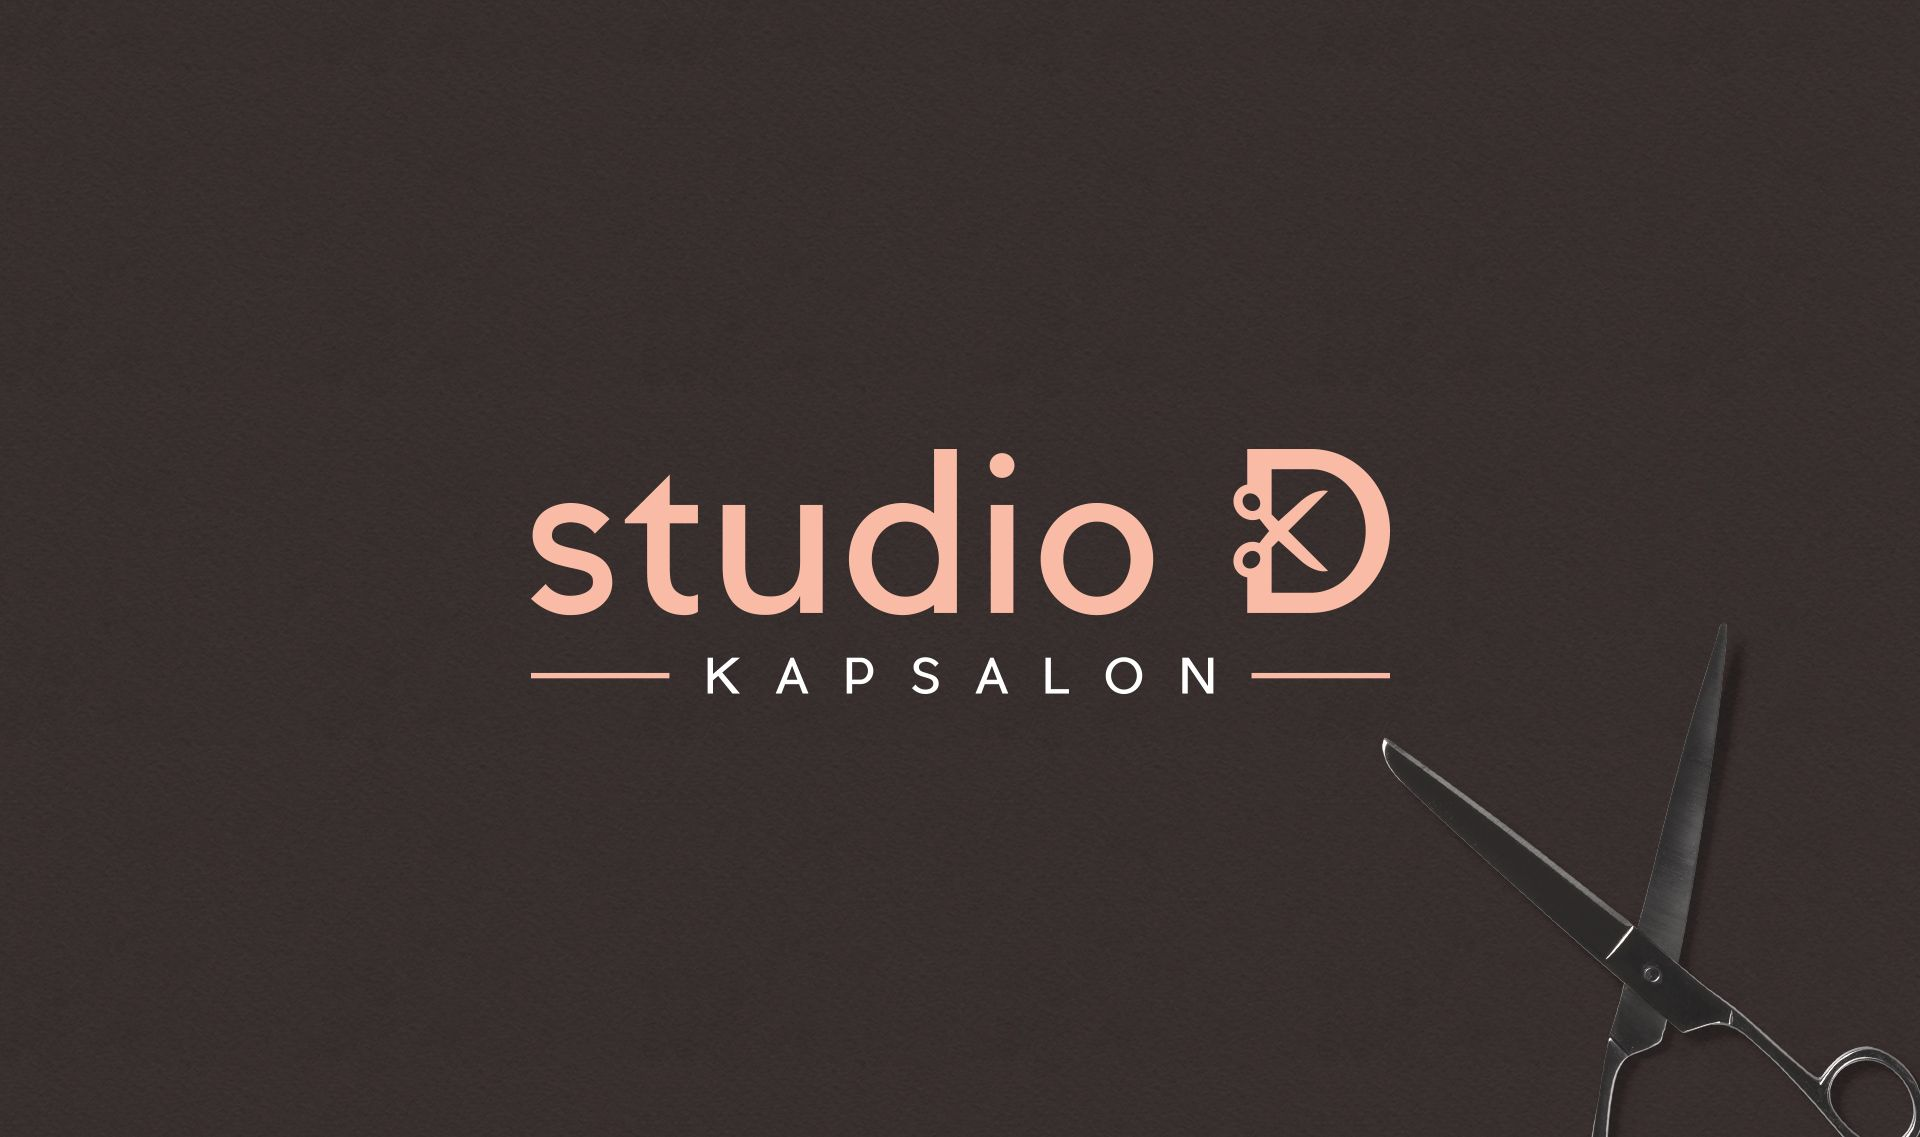 Studio D logo with scissors